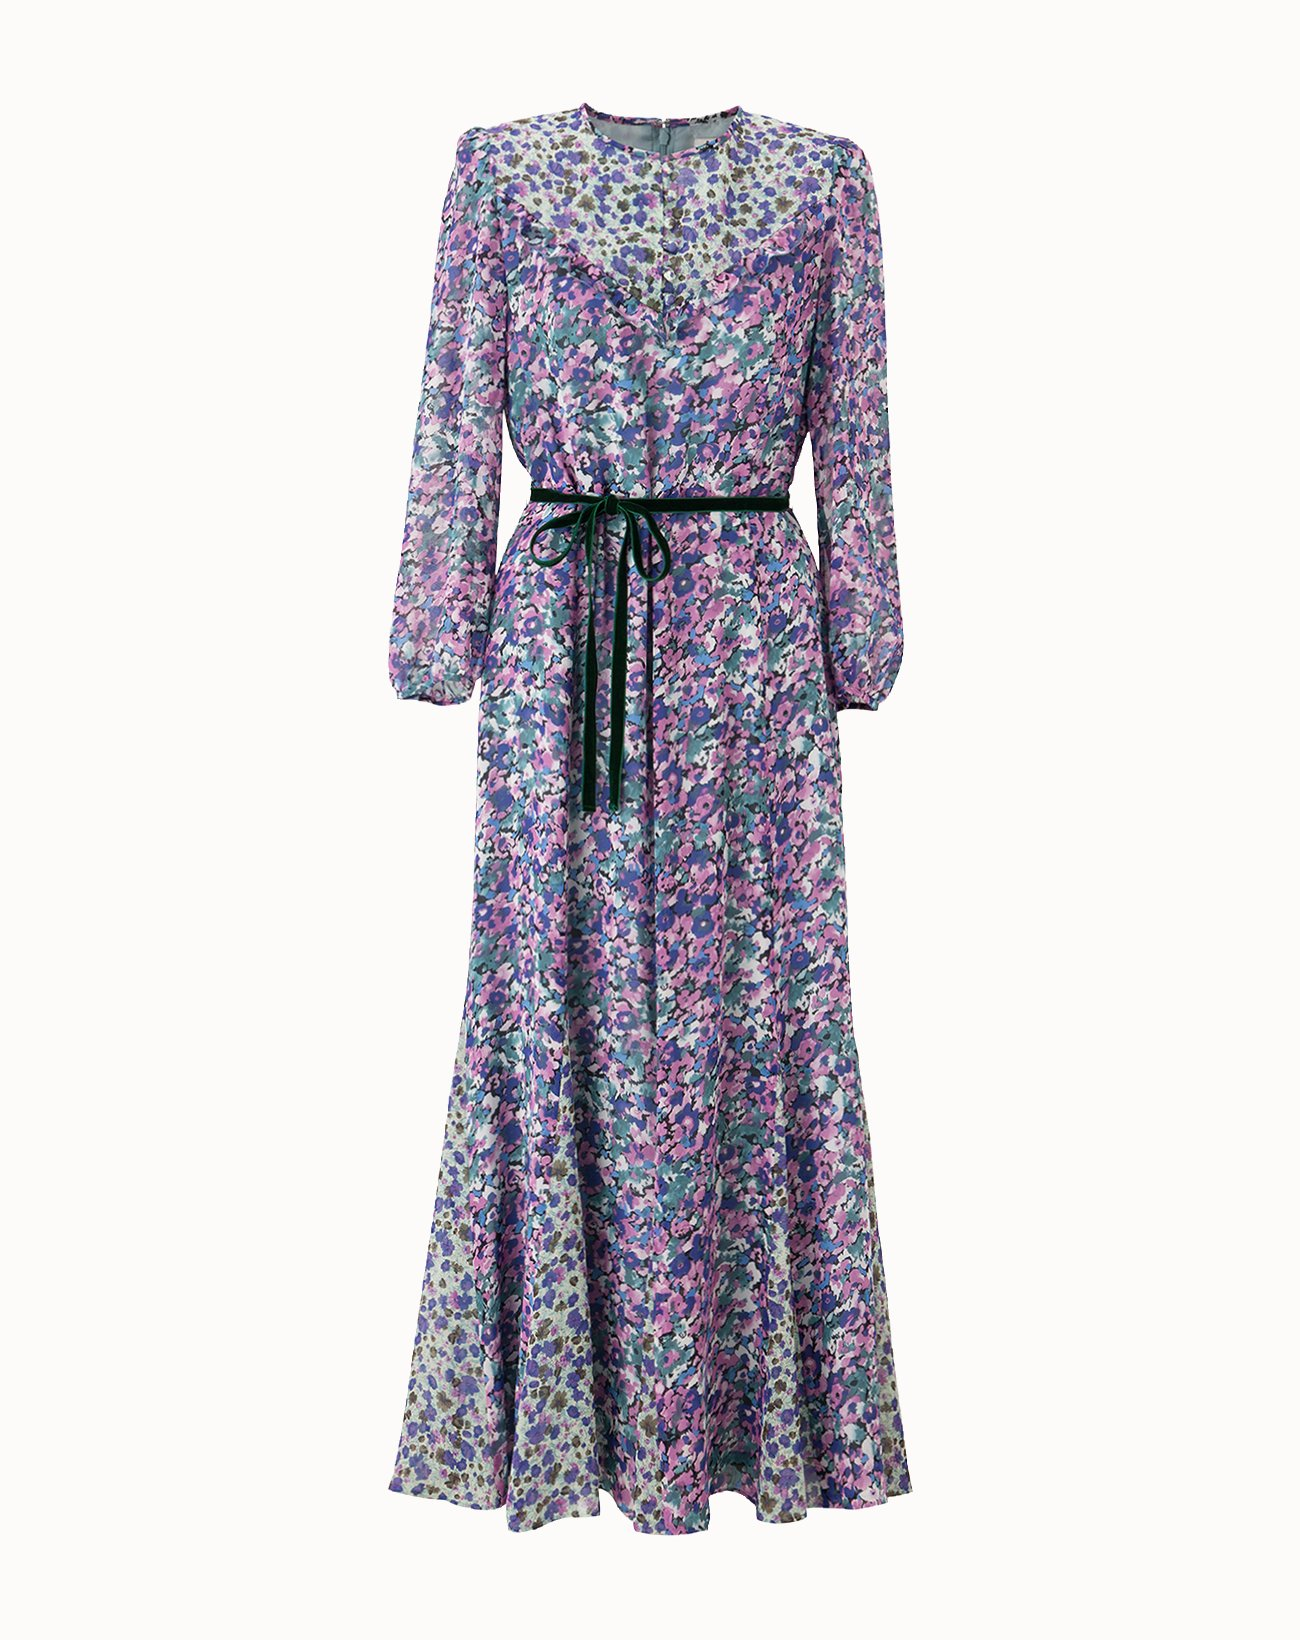 leur logette - ONLINE Limited  Edition Dress - Purple